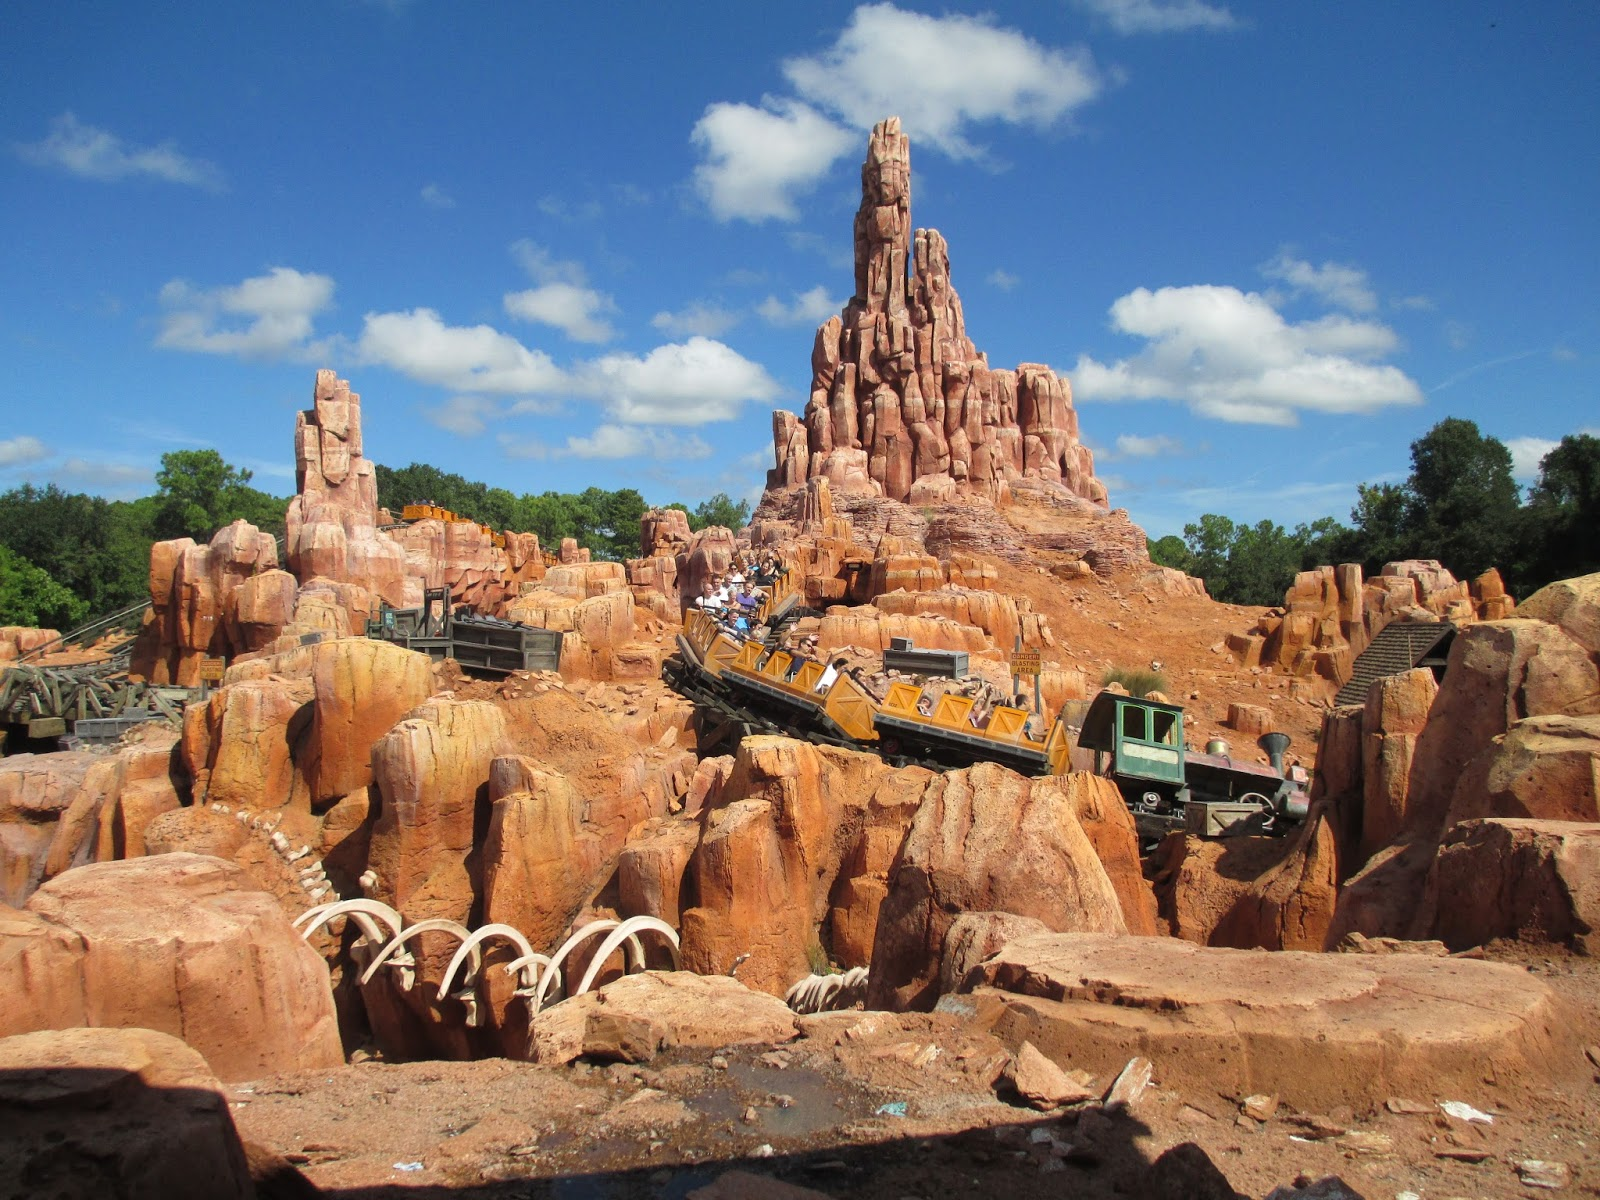 Big Thunder Mountain Railroad, Disneyland Park, Magic Kingdom Park, Frontierland, Disneyland Paris, Tokyo Disneyland, Roller coaster, , FastPass, Amusement park, big thunder mountain railroad, Rock, Formation, Amusement park, Walt disney world, Park, Historic site, Outcrop, Recreation, National park, Geology